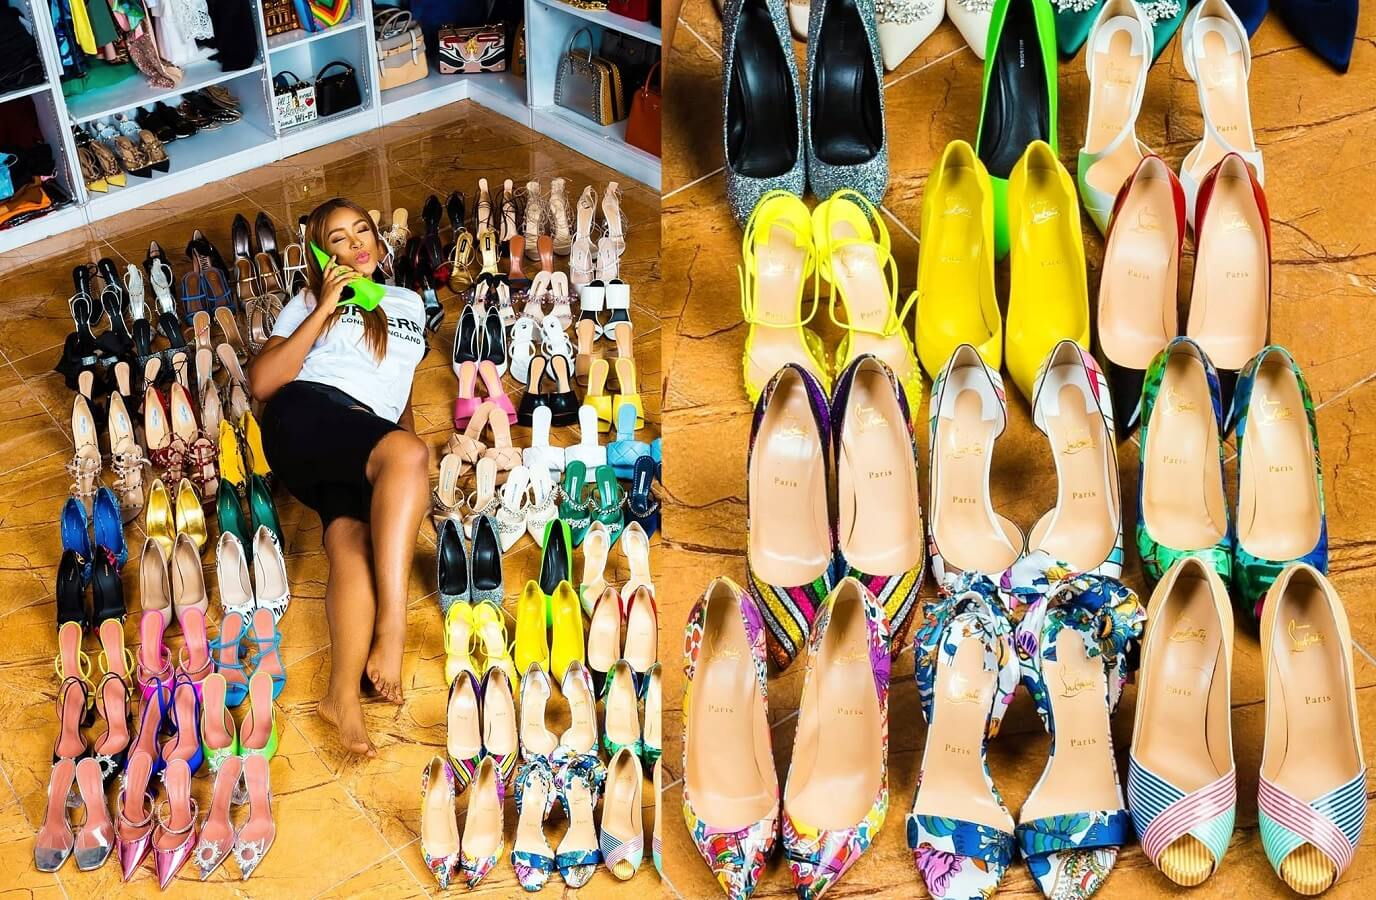 Linda Ikeji marks 40th birthday with 80 pairs of shoes